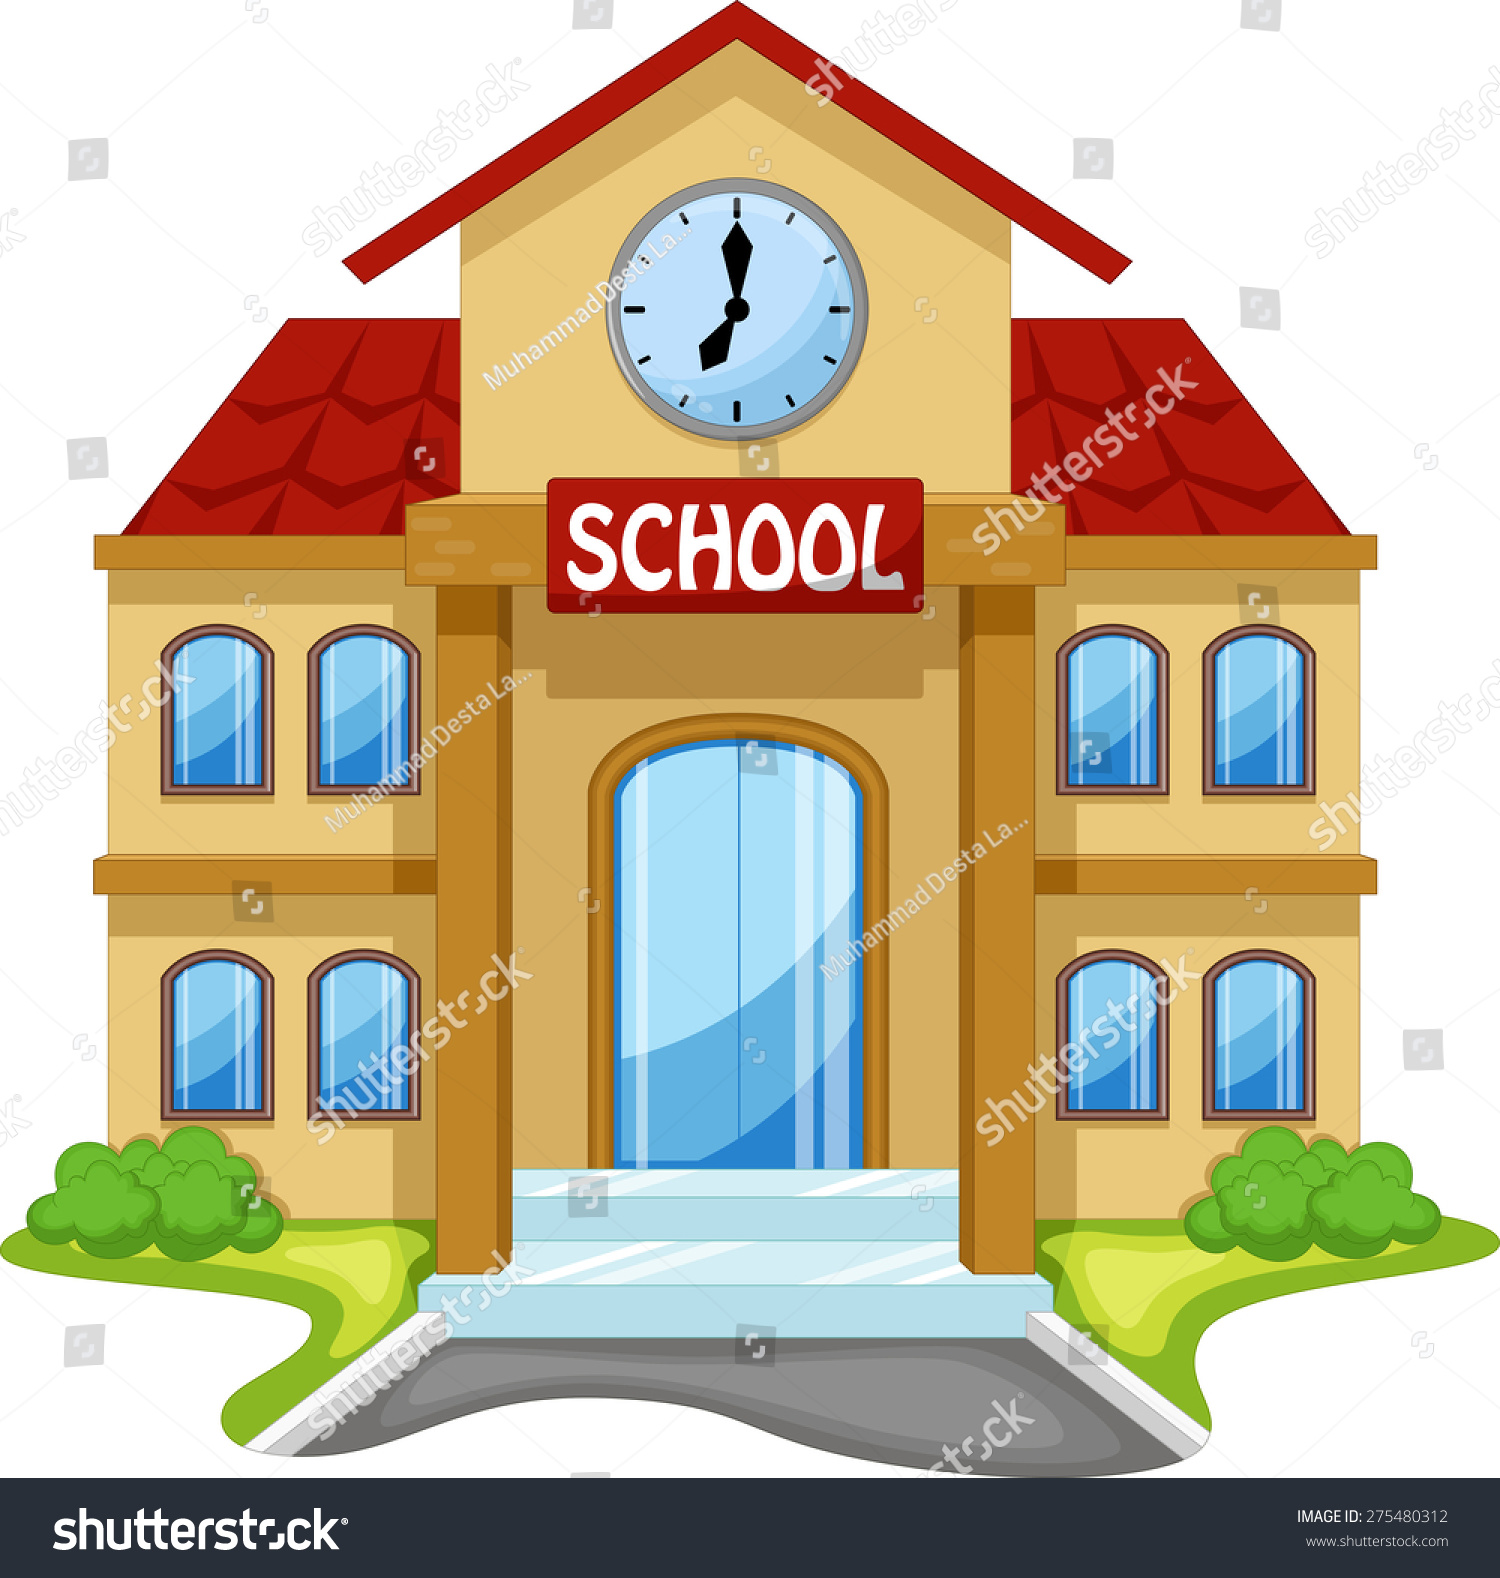 school building cartoon stock vector 275480312 shutterstock